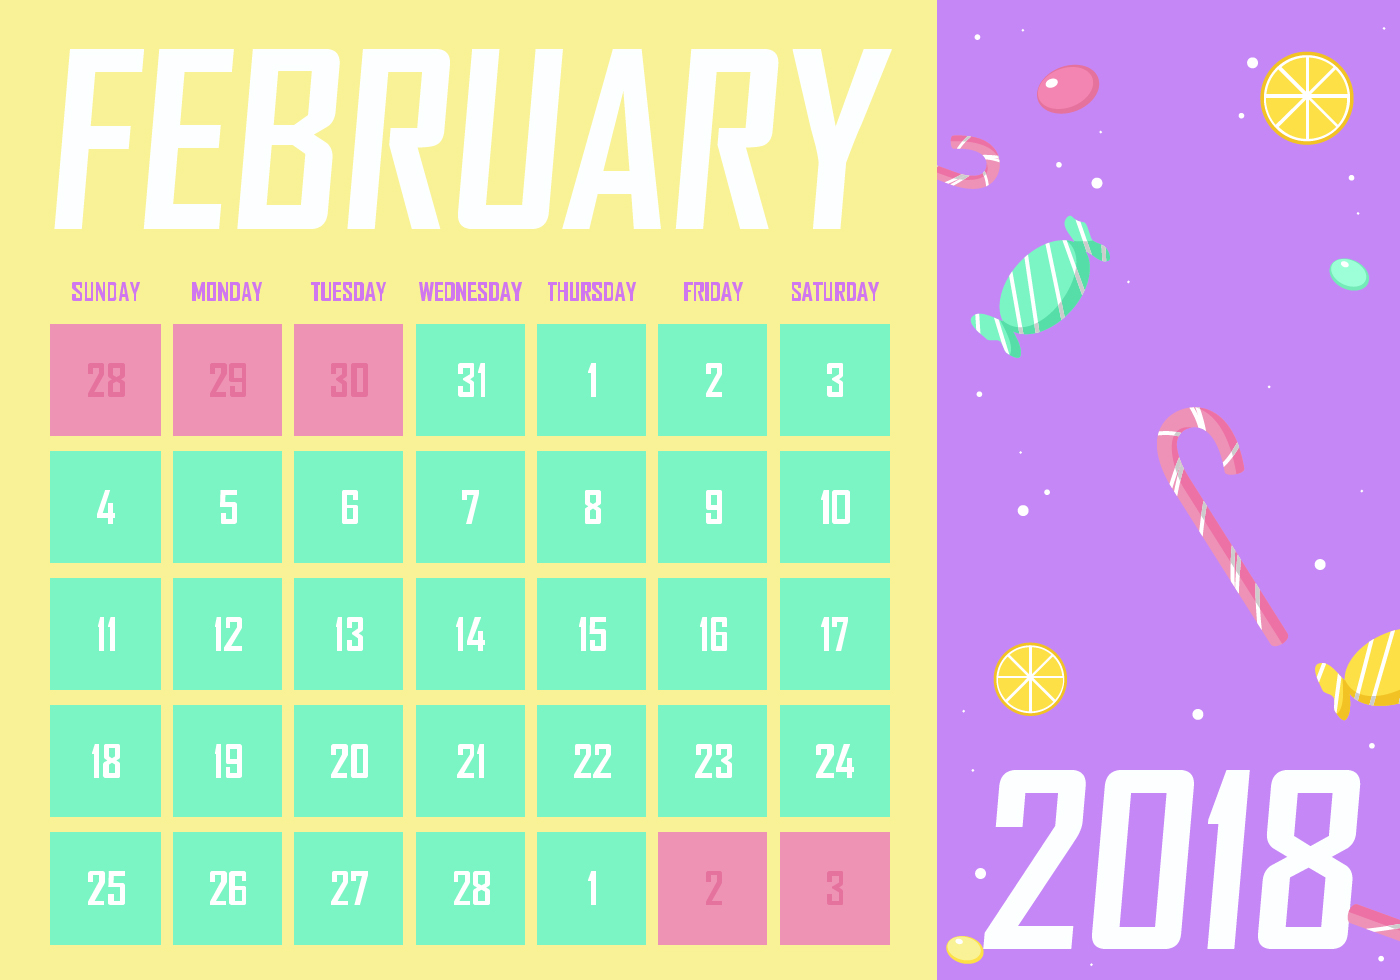 February Printable Monthly Calendar Free Vector - Download Free Vectors, Clipart ...